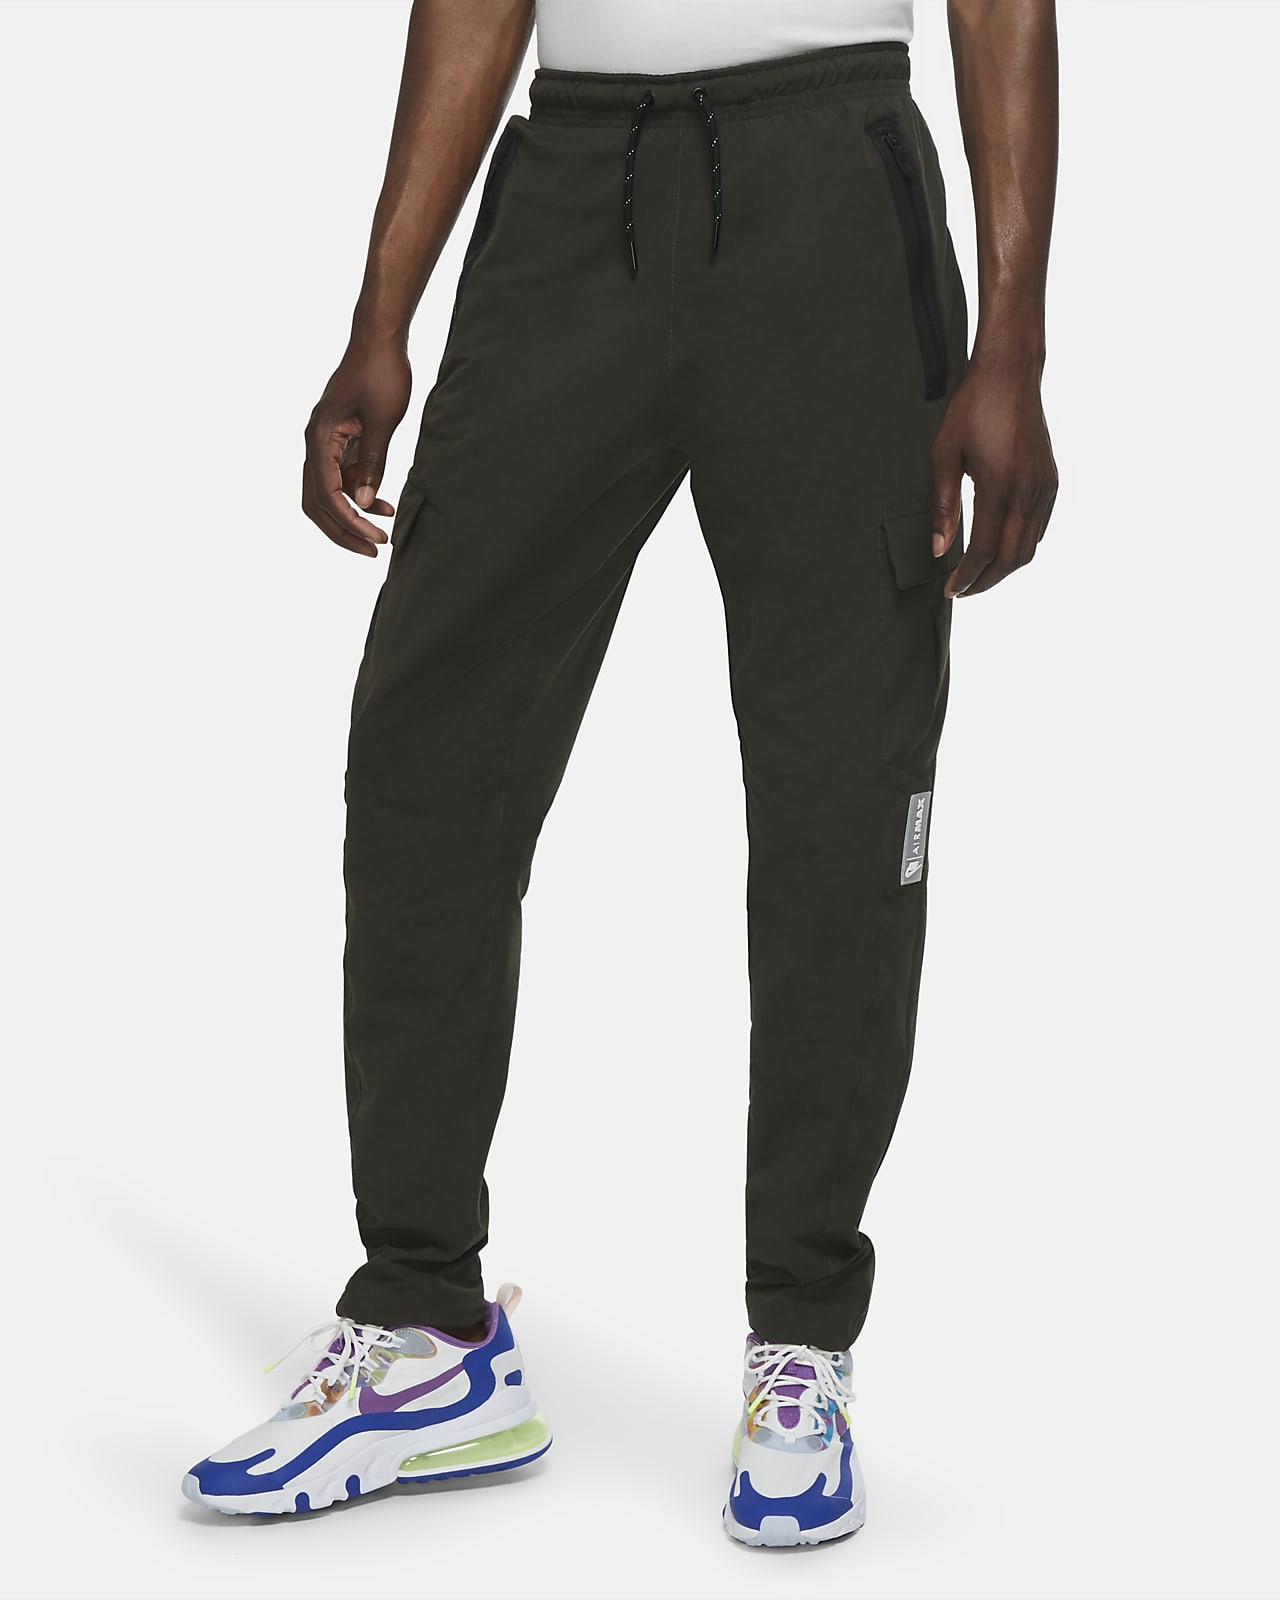 Nike Sportswear Air Max Men's Woven Cargo Trousers